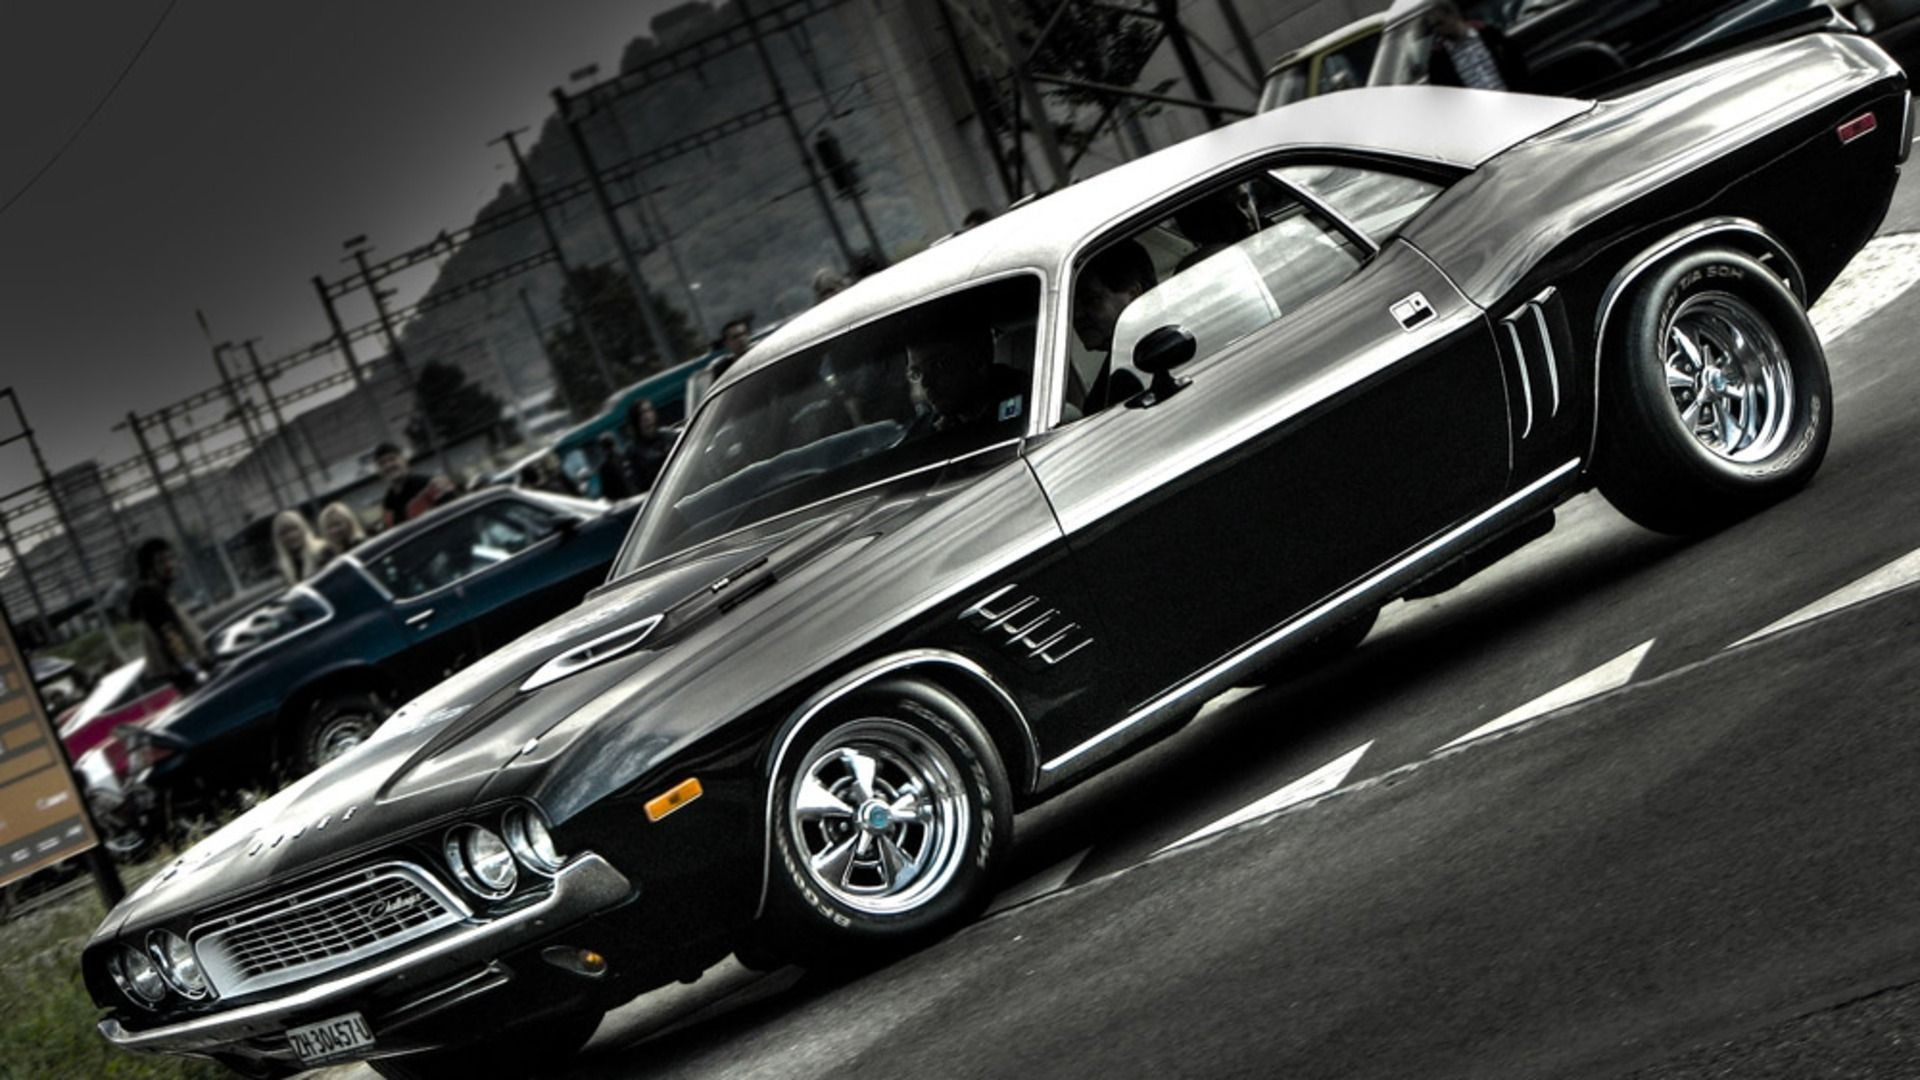 Muscle Car Pics. Muscle Car Wallpapers. 0.24 MB